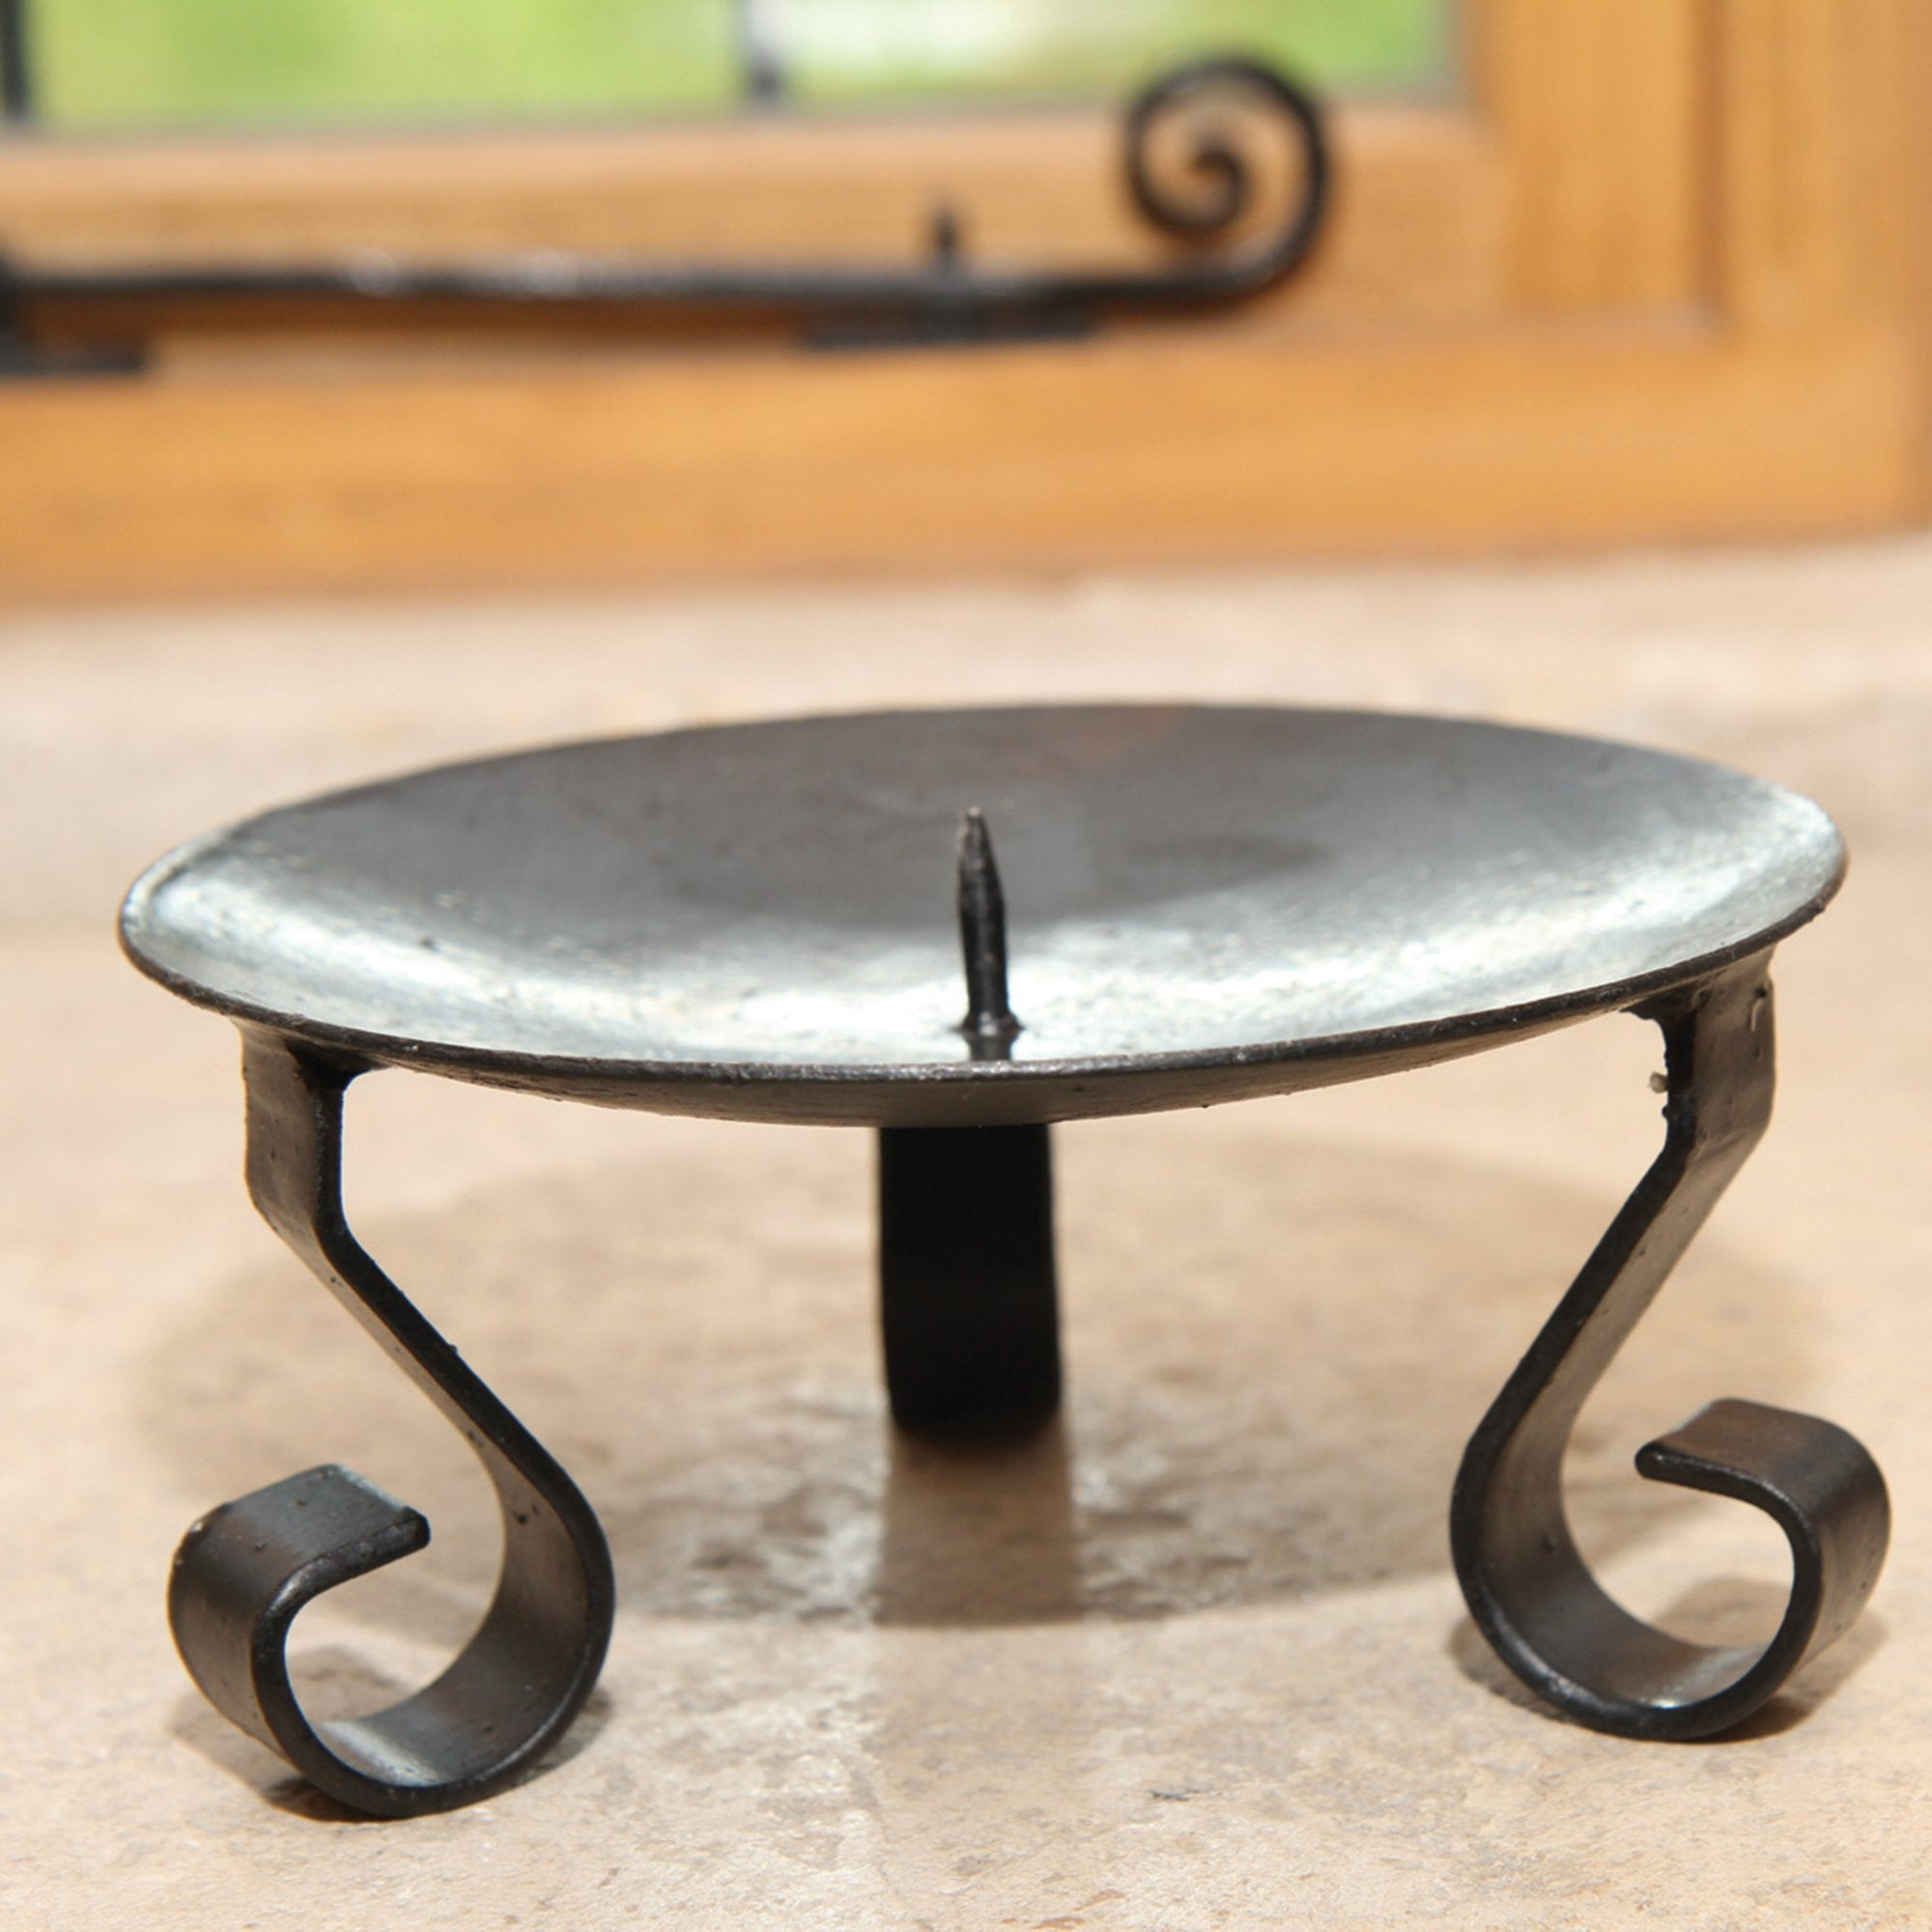 Small (4inch/100mm) Brecon Candle Holder